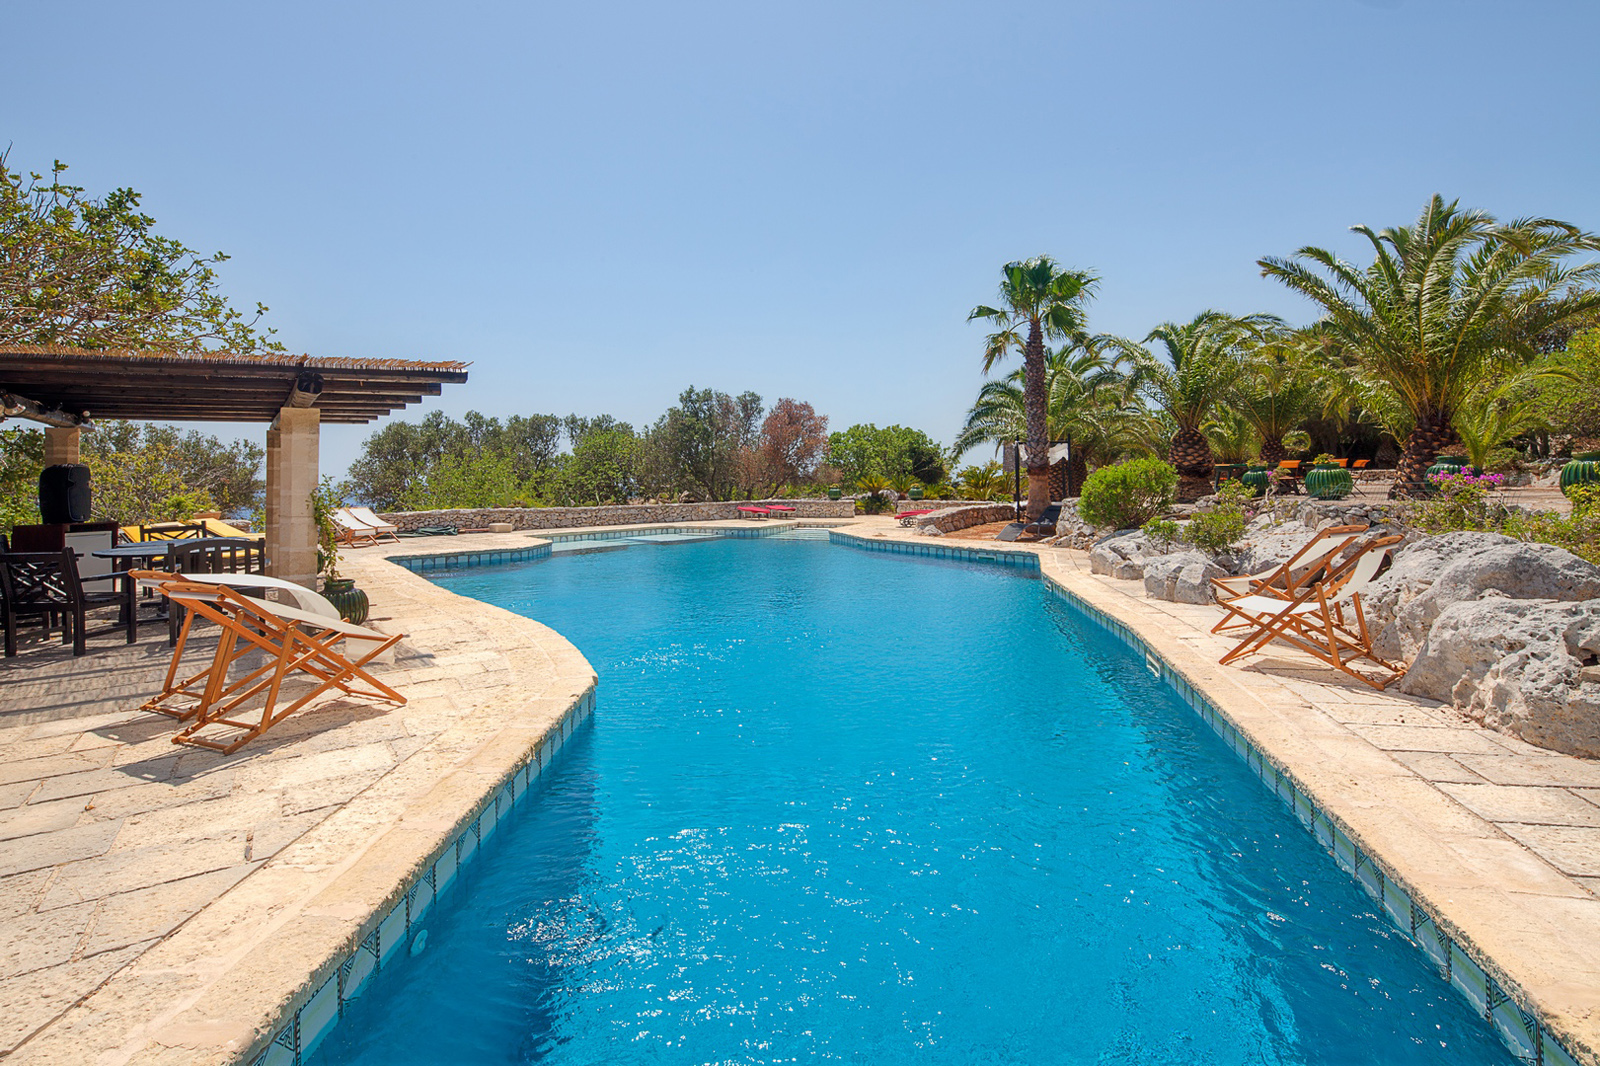 Luxury Pool Villa Demetra Santa Maria di Leuca Puglia to enjoy Sea Urchins